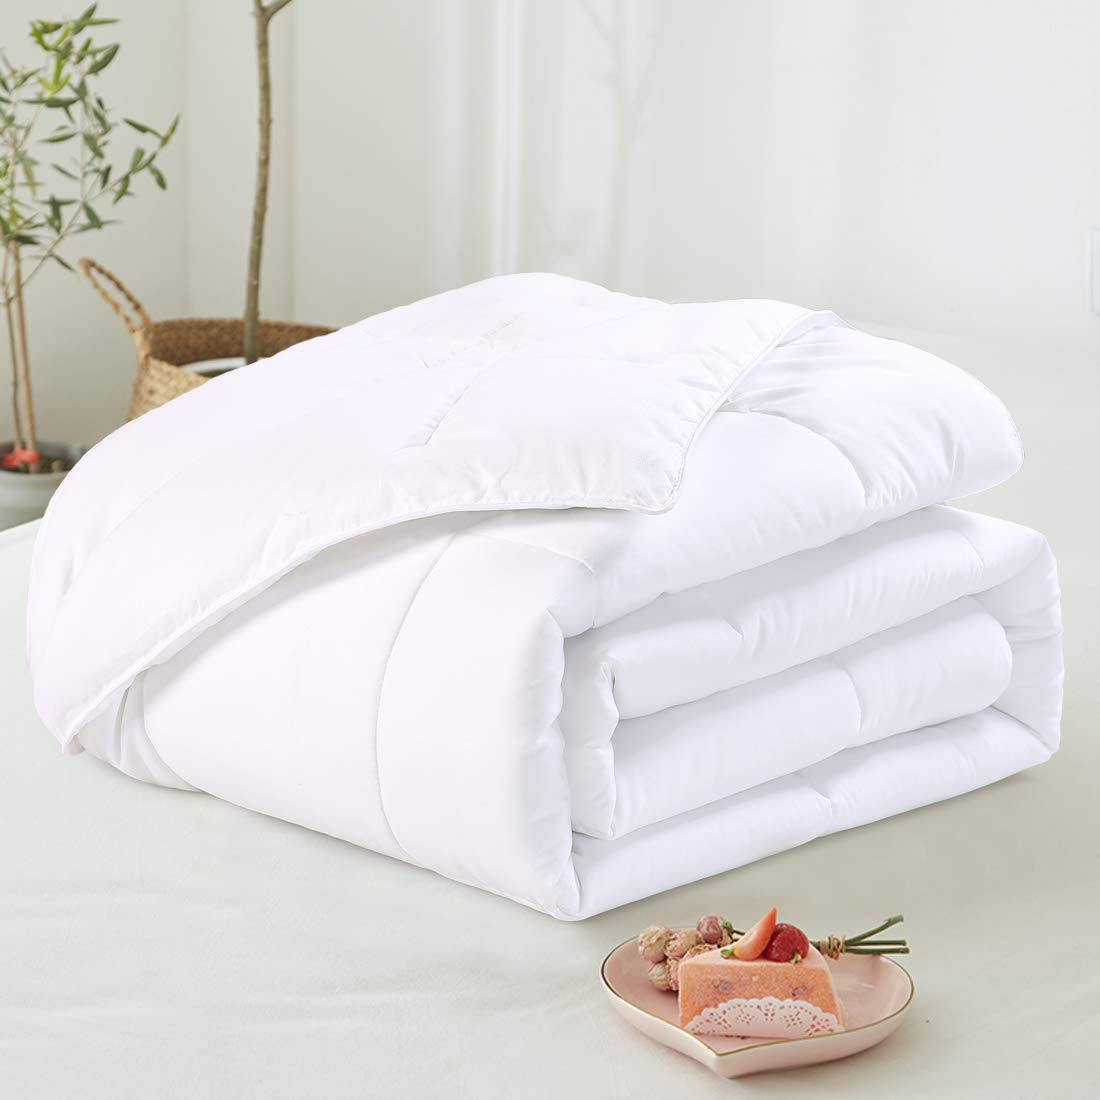 EMONIA Full/Queen Size Comforter for Summer,White Quilted Down Alternative Duvet Insert-Hotel Collection Reversible Hypoallergenic Light and Machine Washable by EMONIA (Image #2)